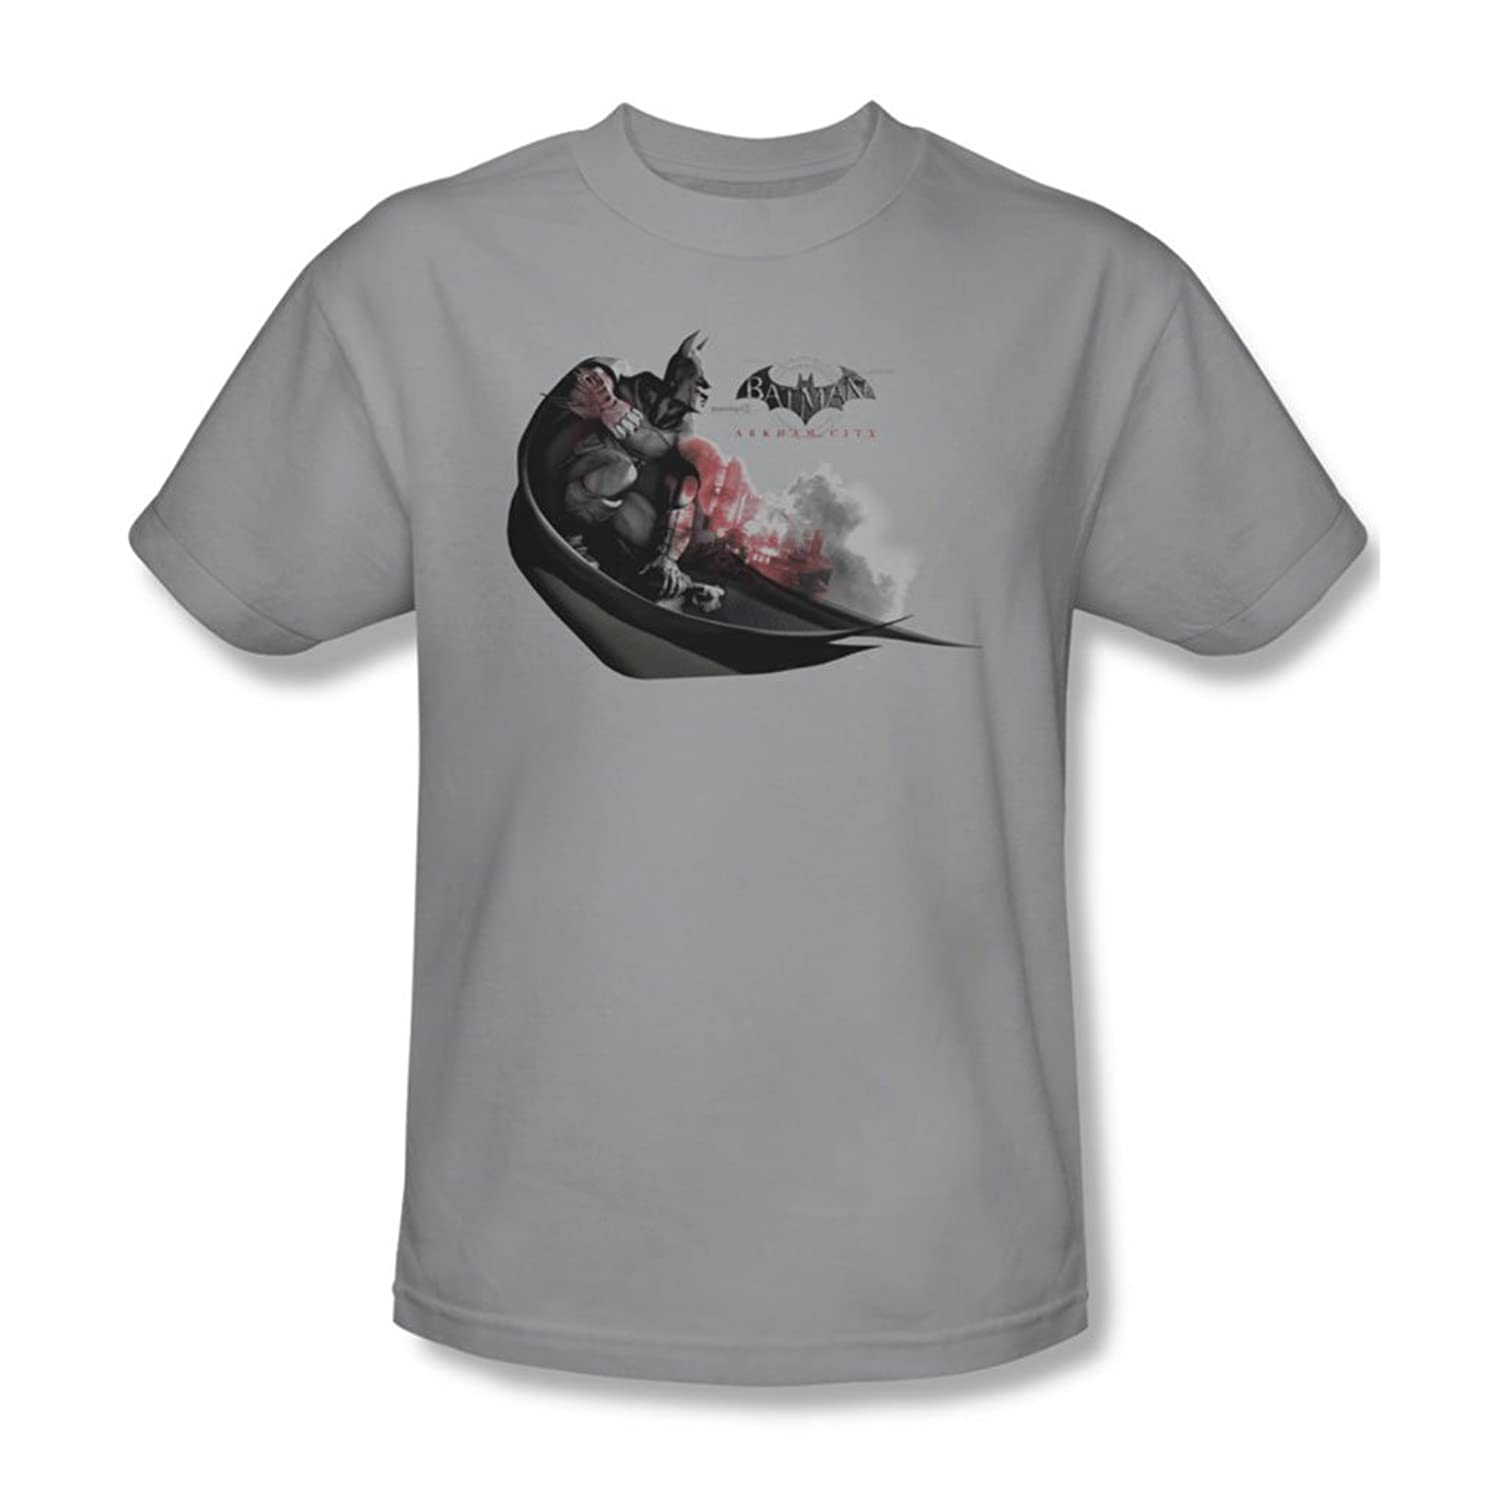 Batman: Arkham City - Ready To Pounce Adult T-Shirt In Silver